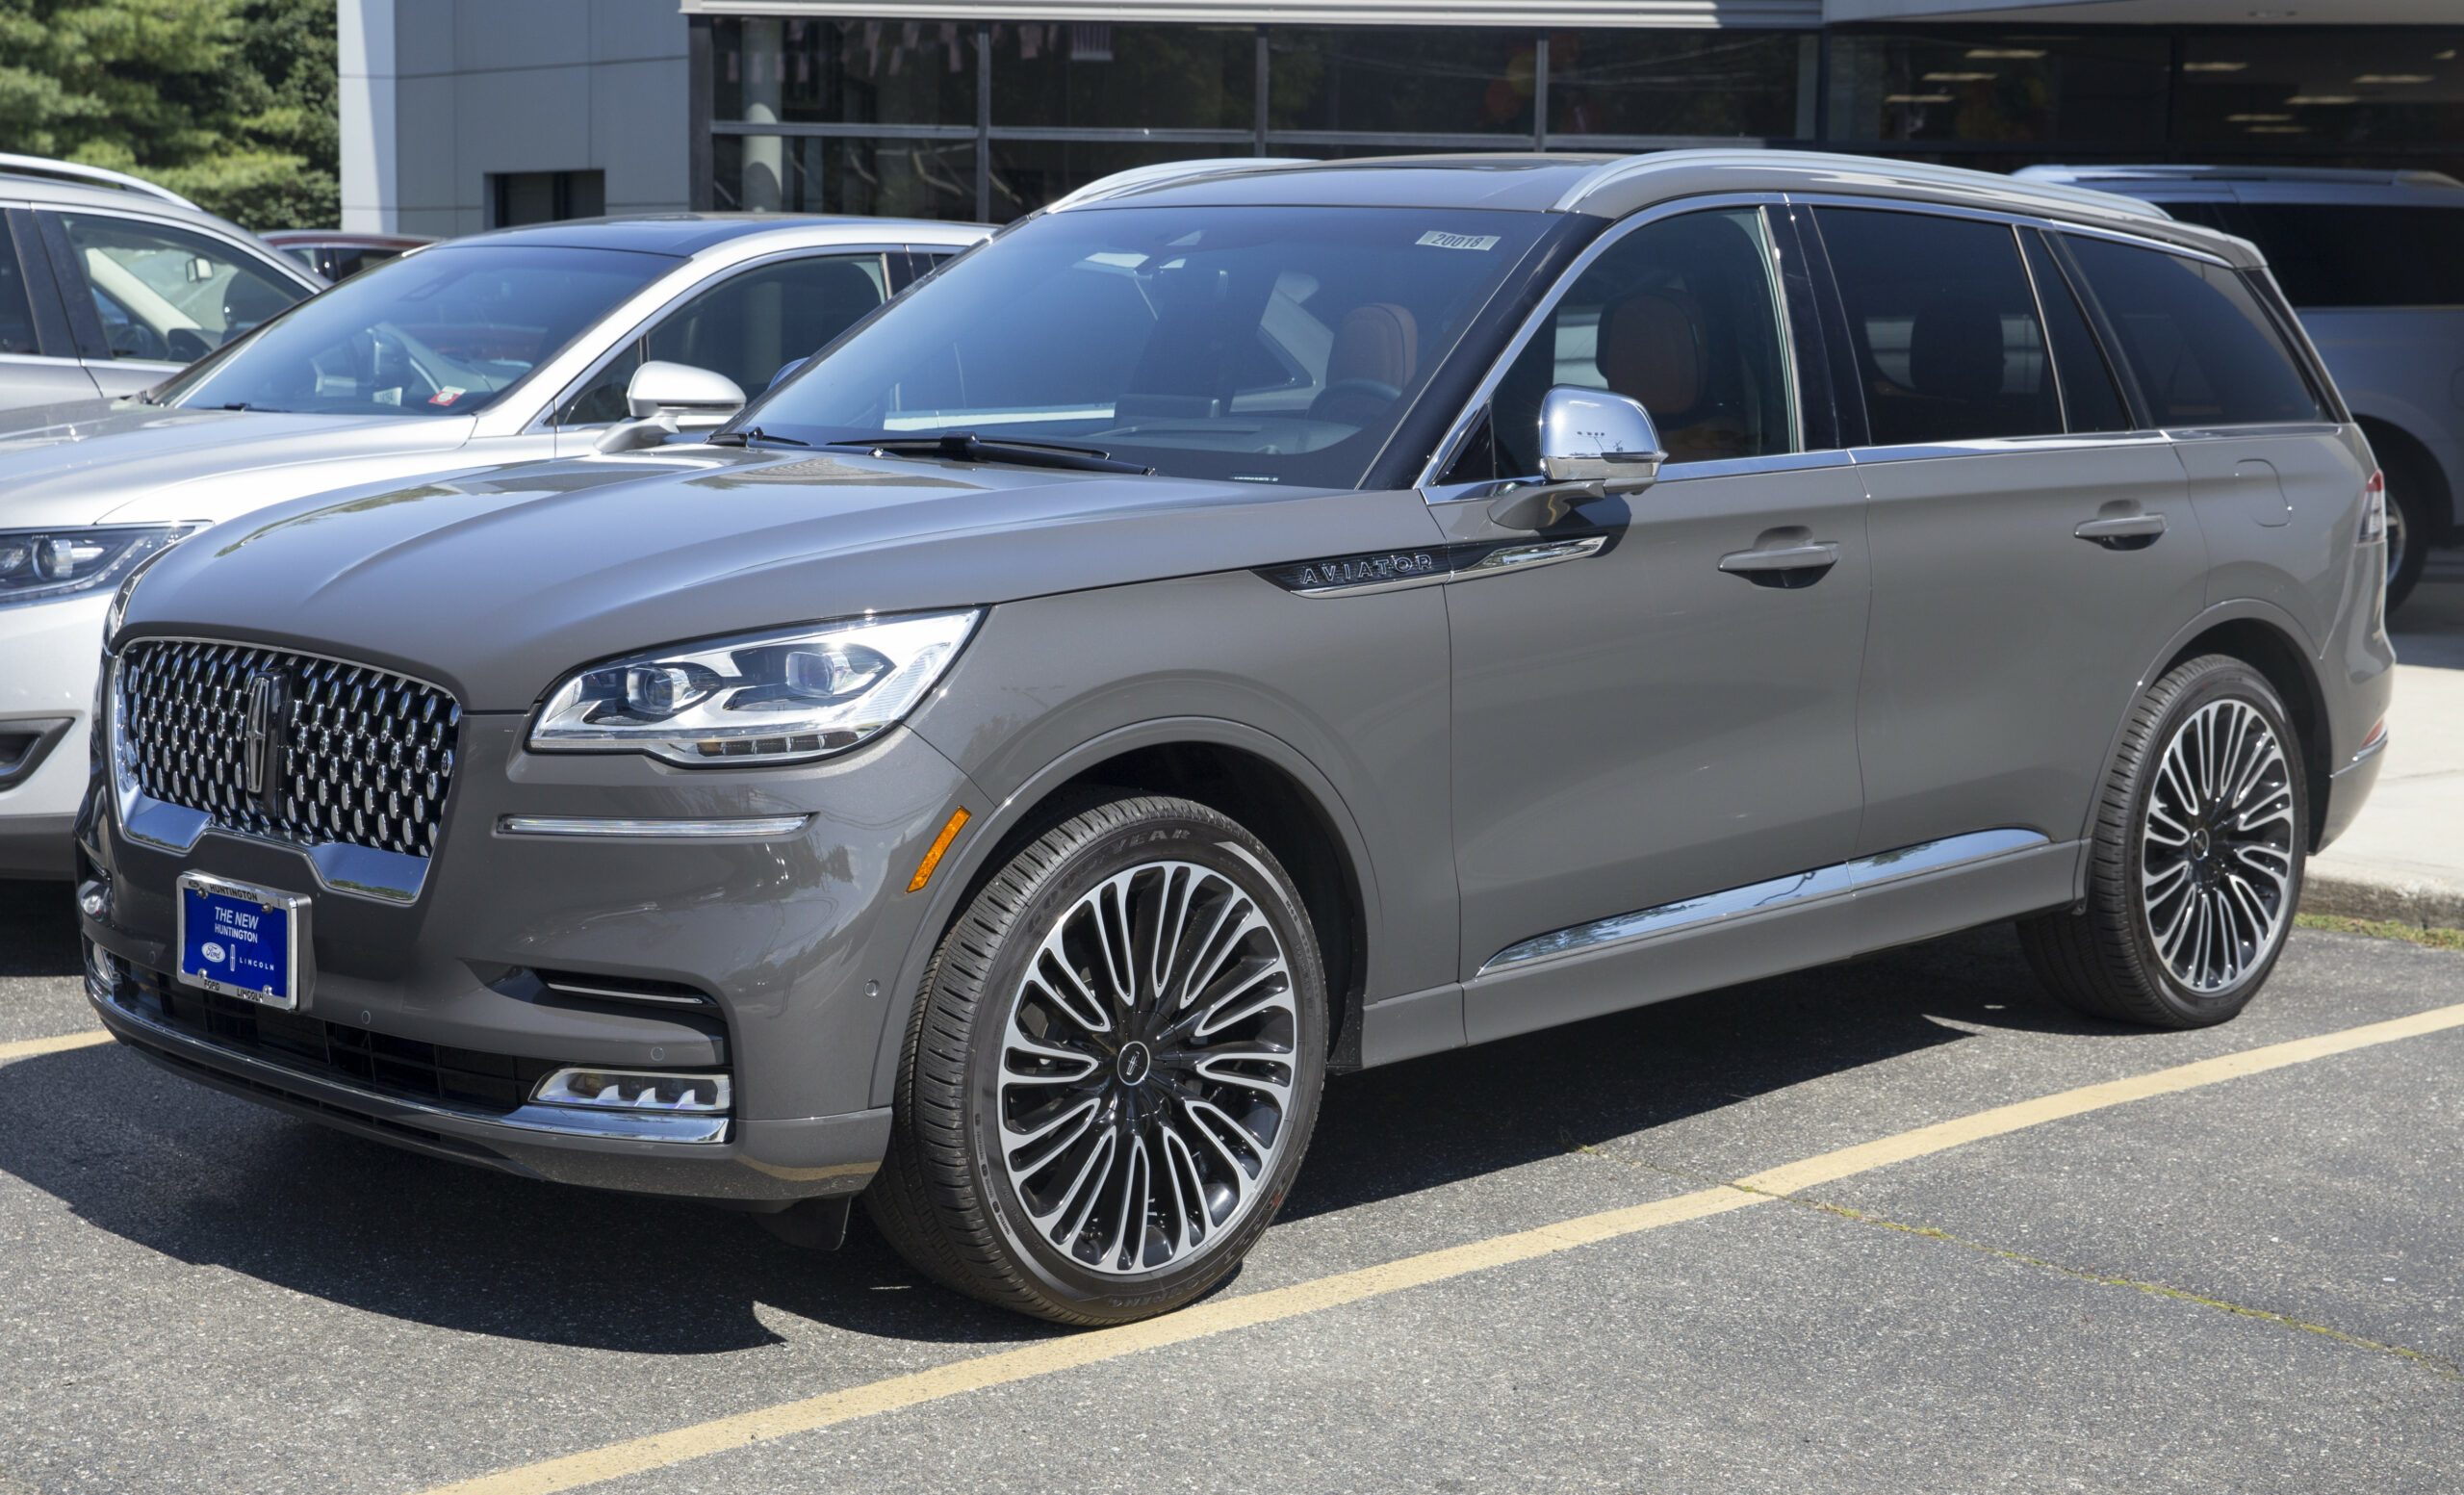 Redesign and Concept 2022 Lincoln Town Car